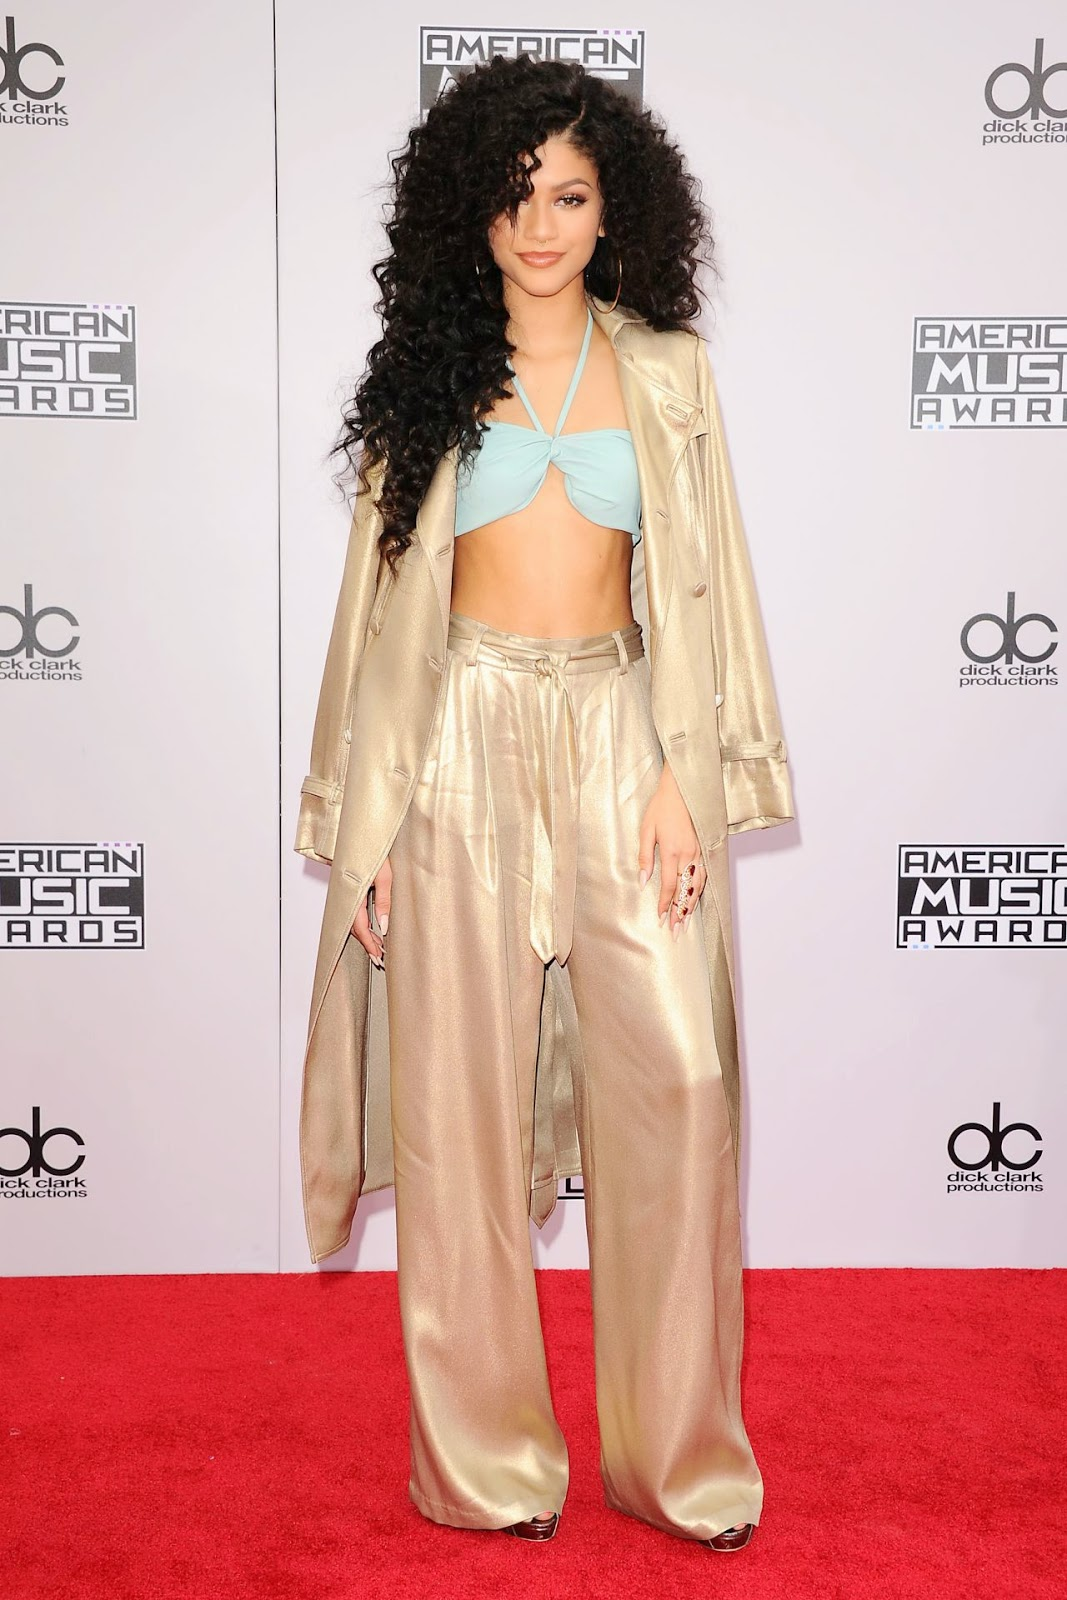 zendaya-coleman-2014-american-music-awards-07